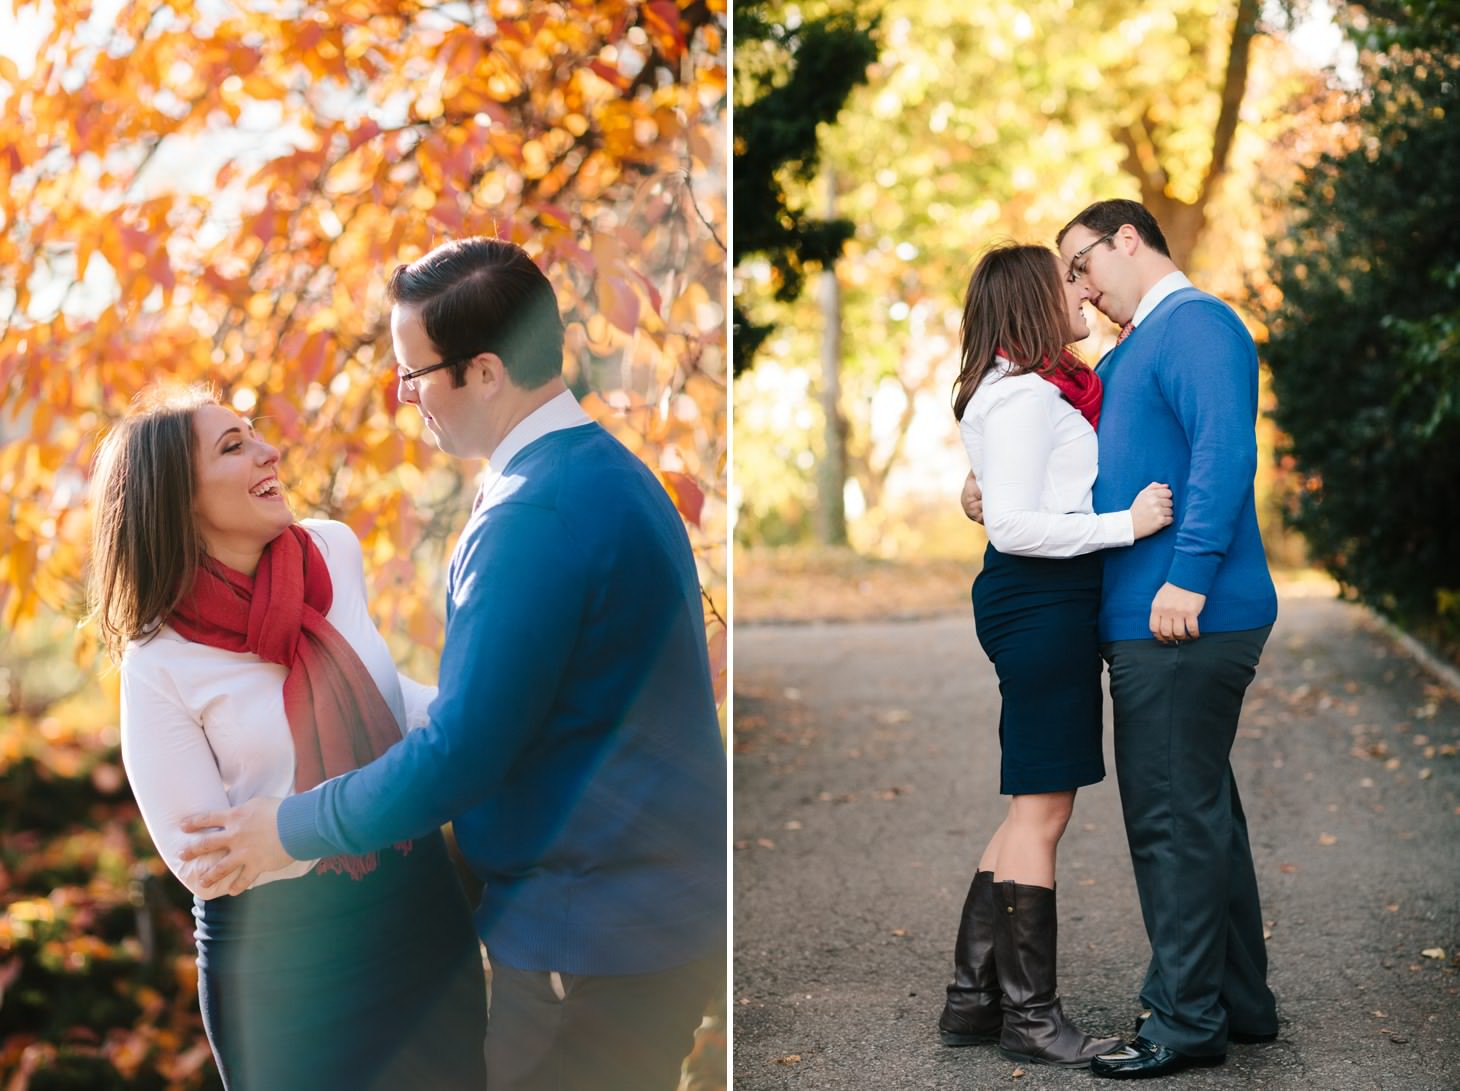 006-nyc-wedding-portrait-photographer-engagement-photos-cloisters-fall-leaves-smitten-chickens.jpg